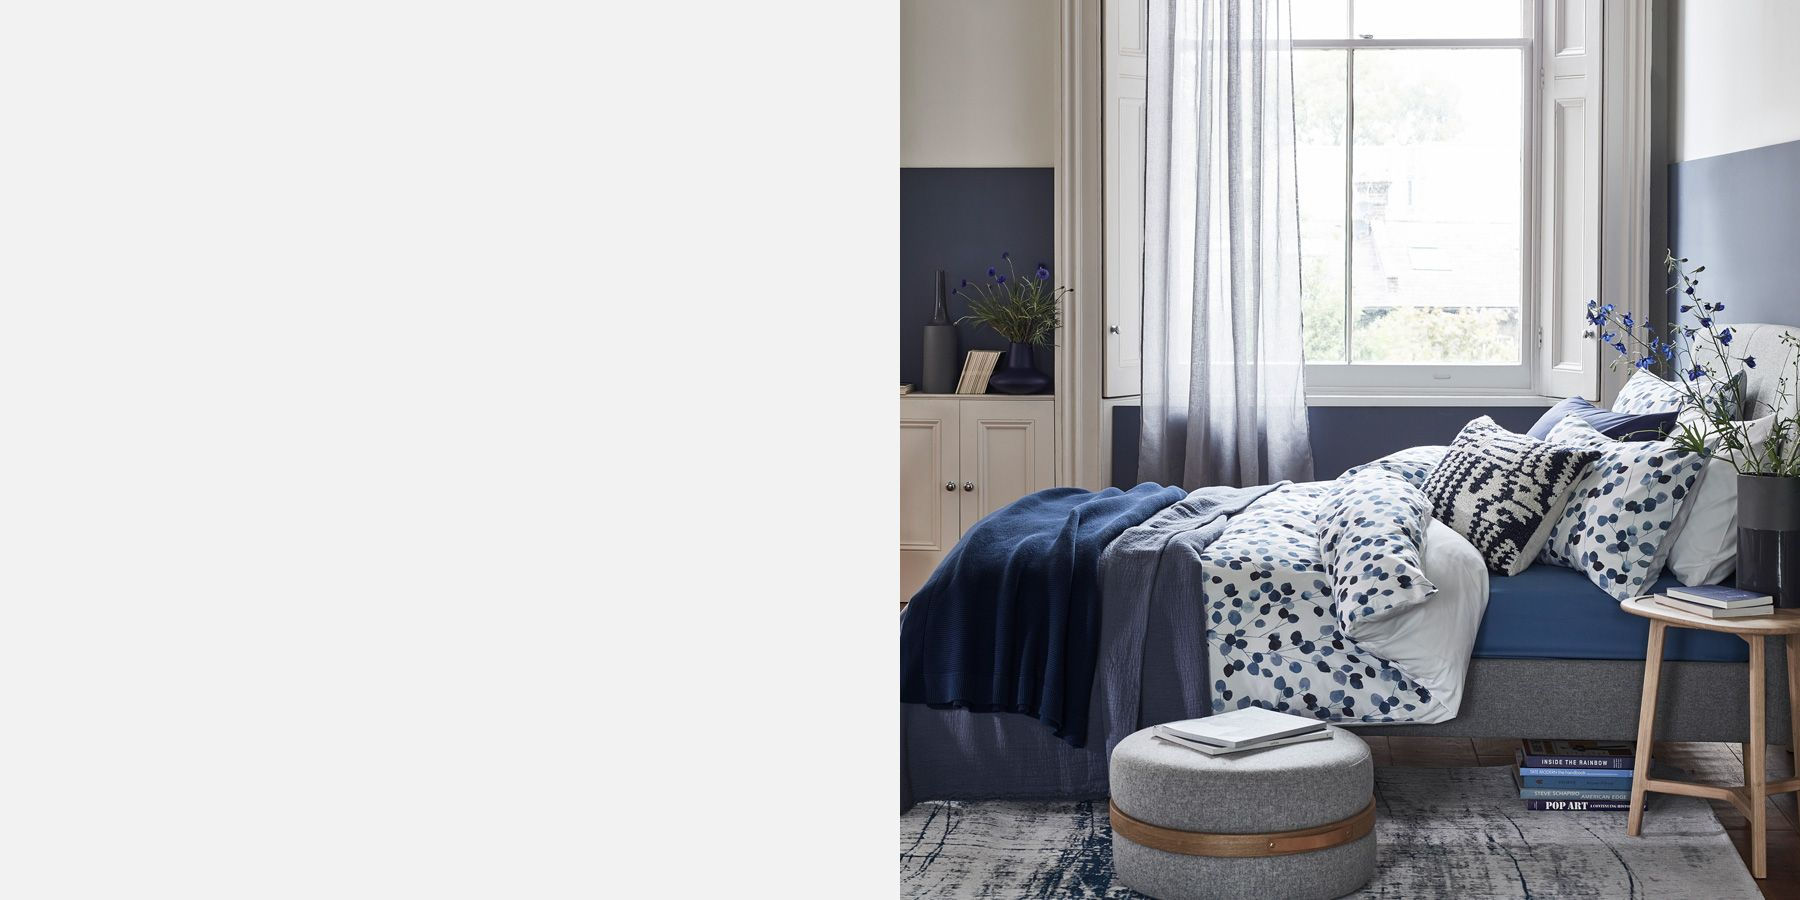 b23eb8e13b Bedding | Bed Sets and Bed Linen | John Lewis & Partners